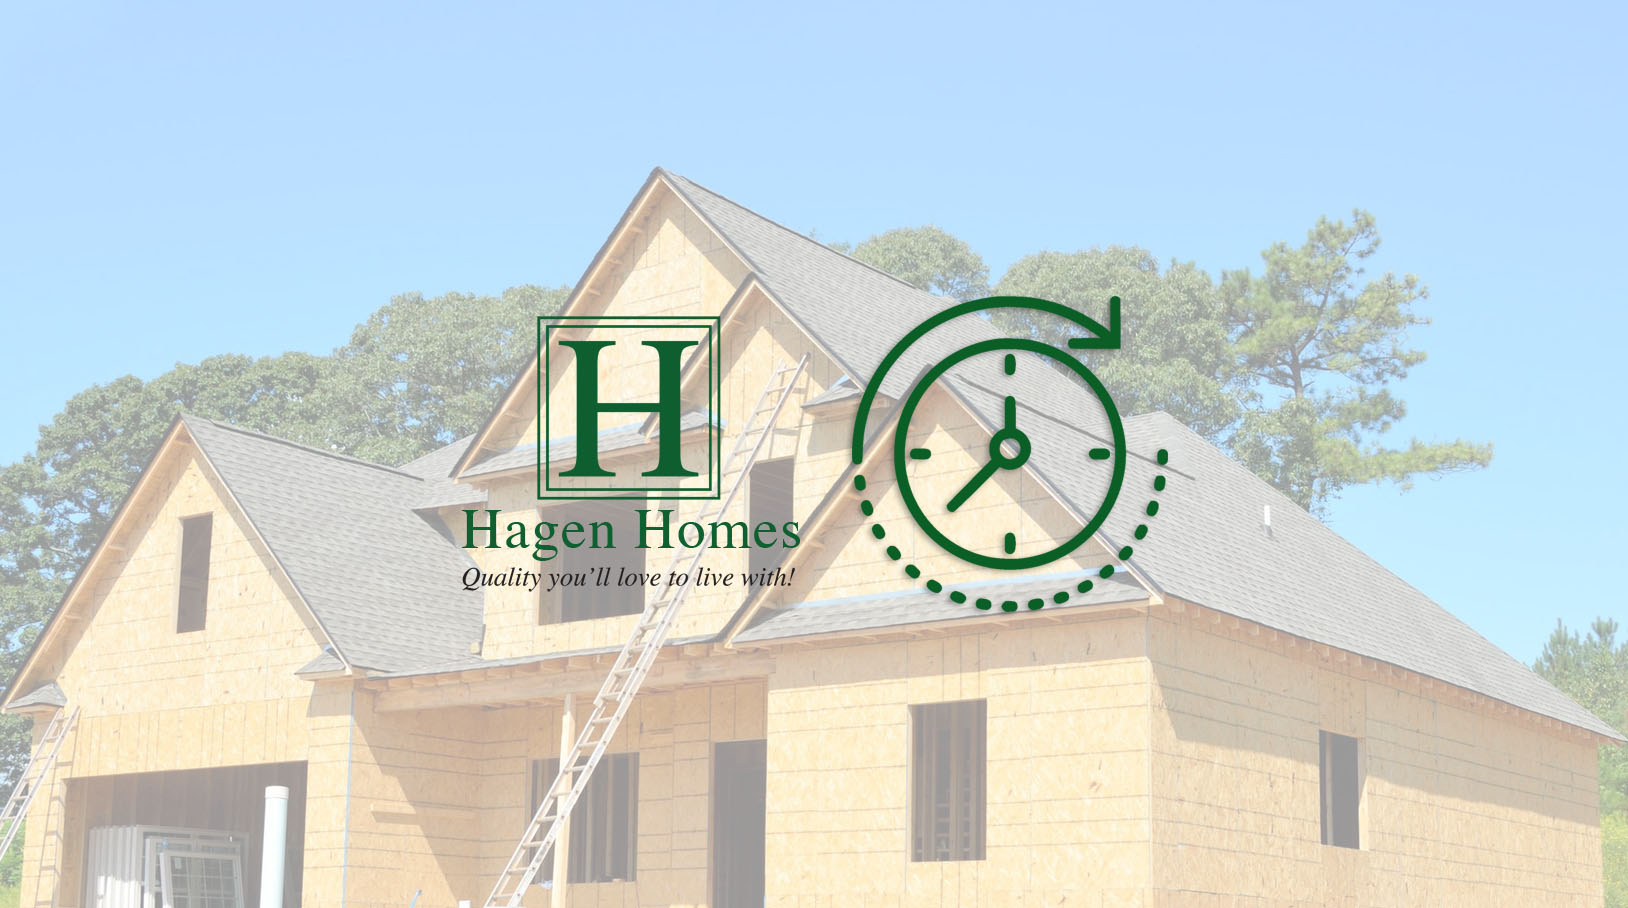 how long does it take to build, hagen homes, build a home in kenosha county